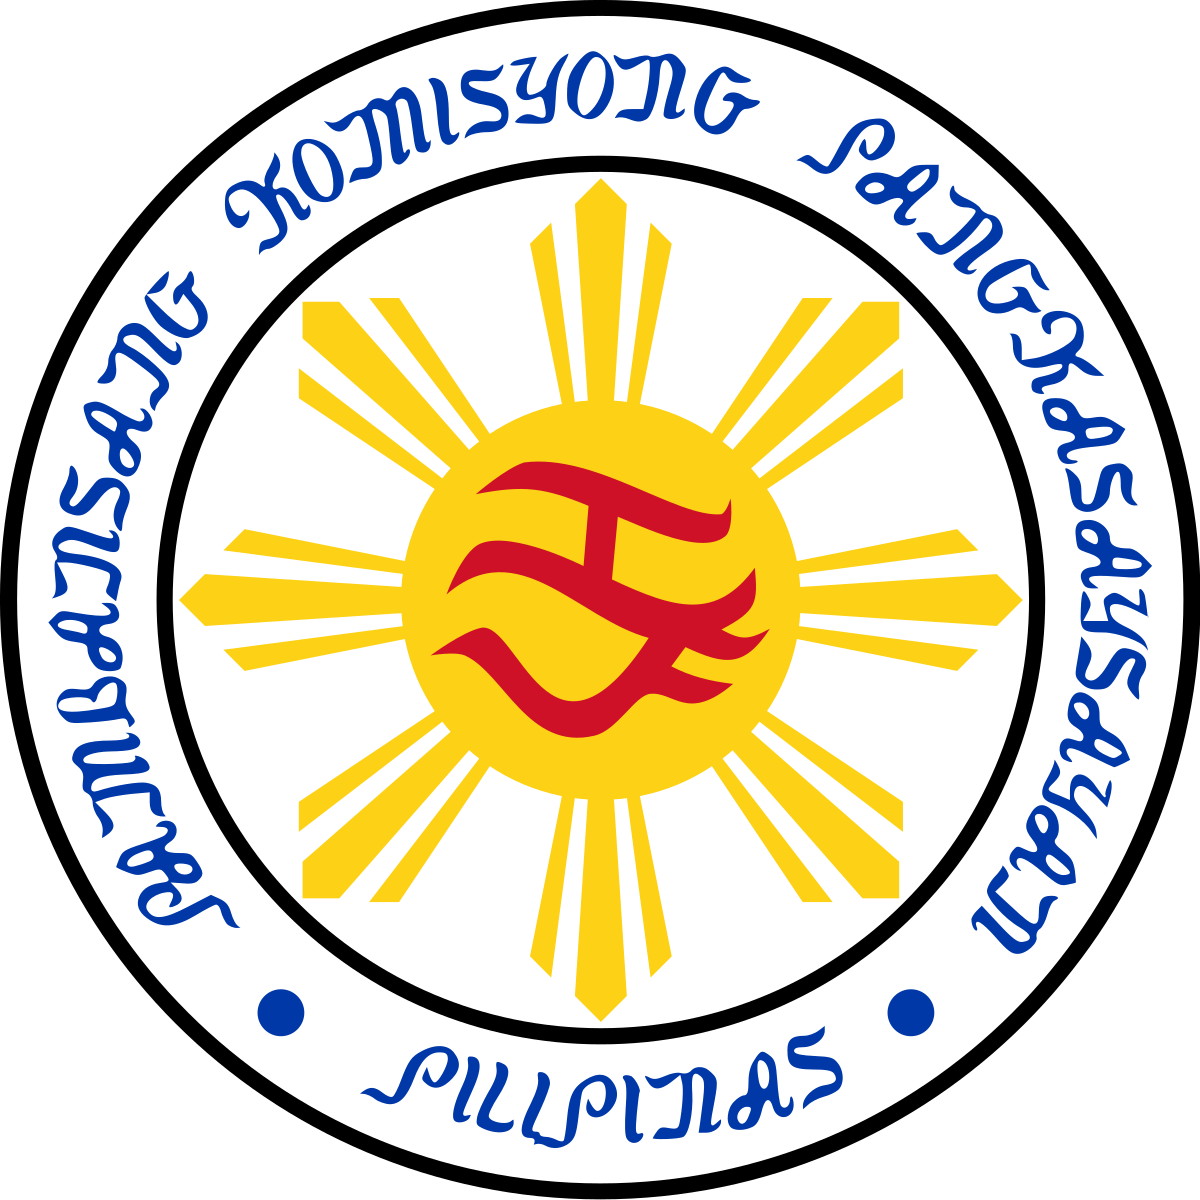 1200px-National_Historical_Commission_of_the_Philippines_(NHCP).svg